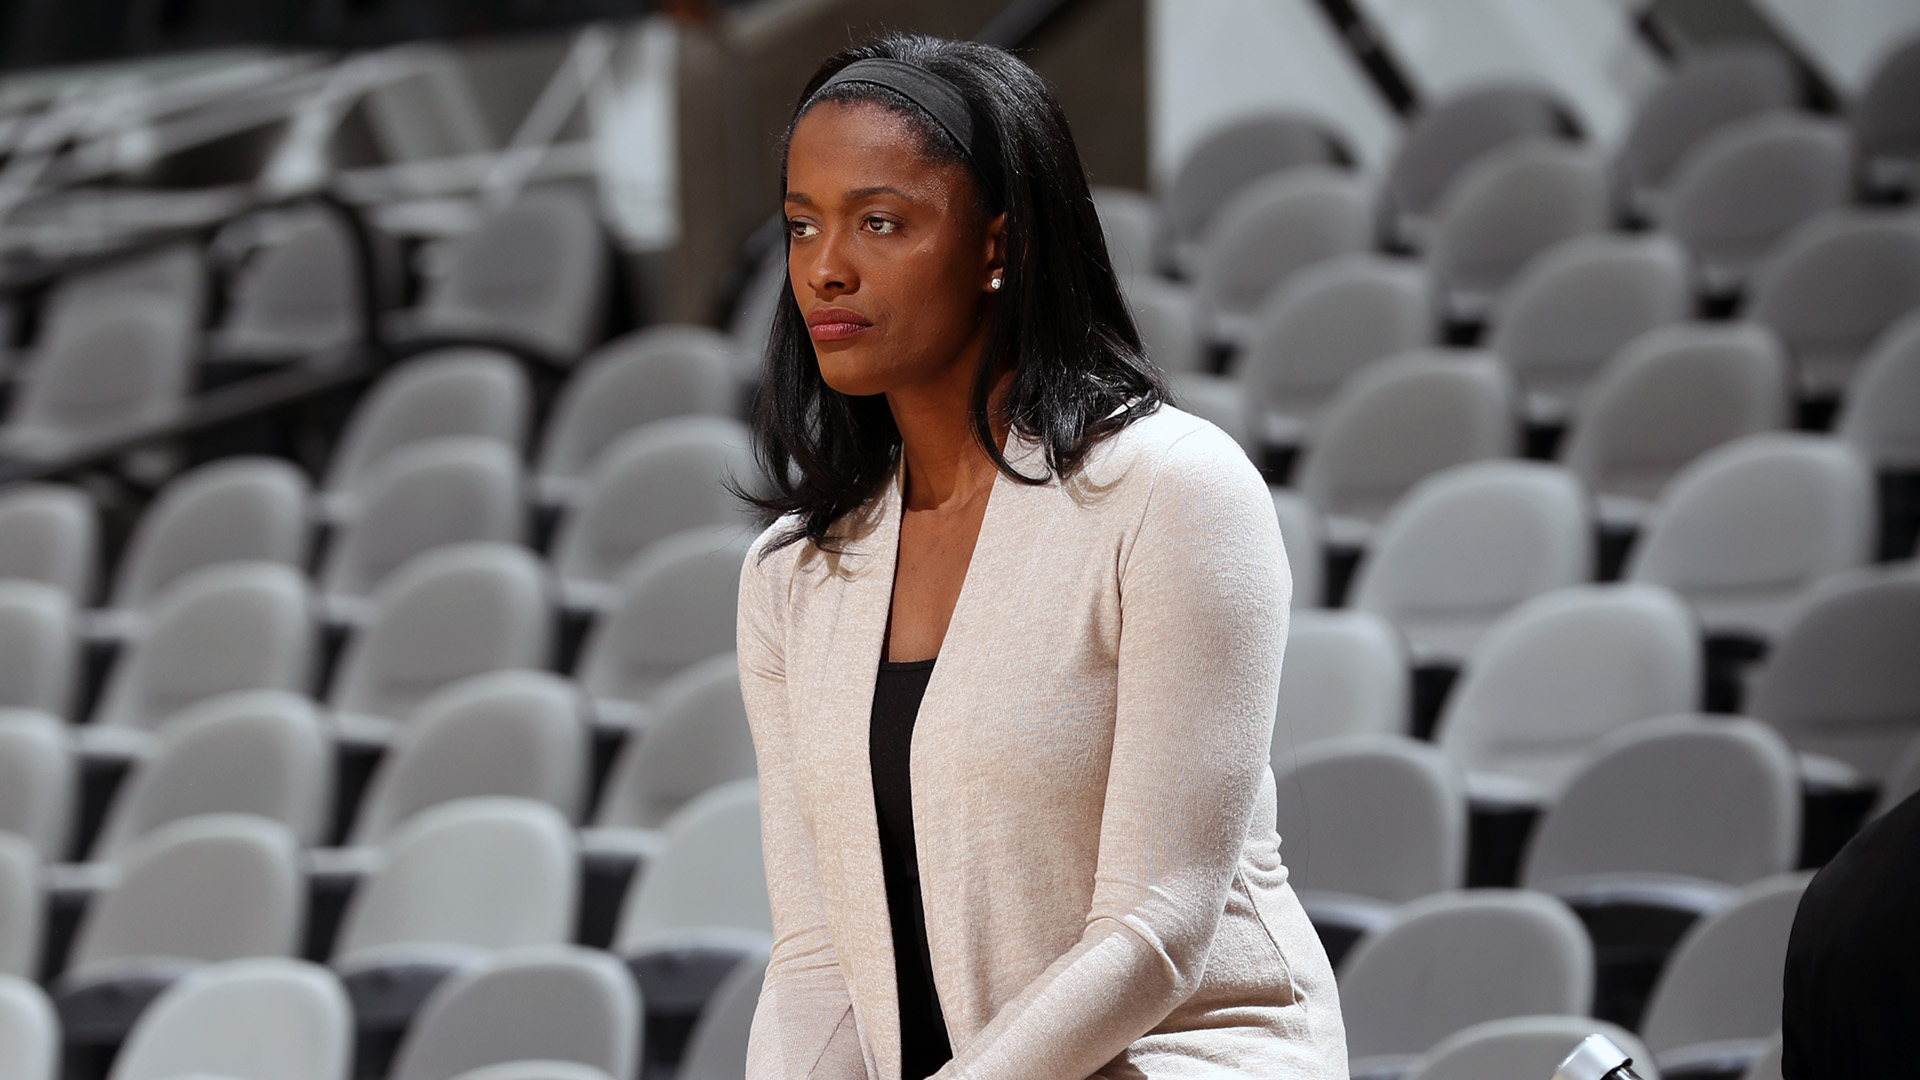 Q&A with Pelicans VP of basketball operations, former WNBA champ Swin Cash